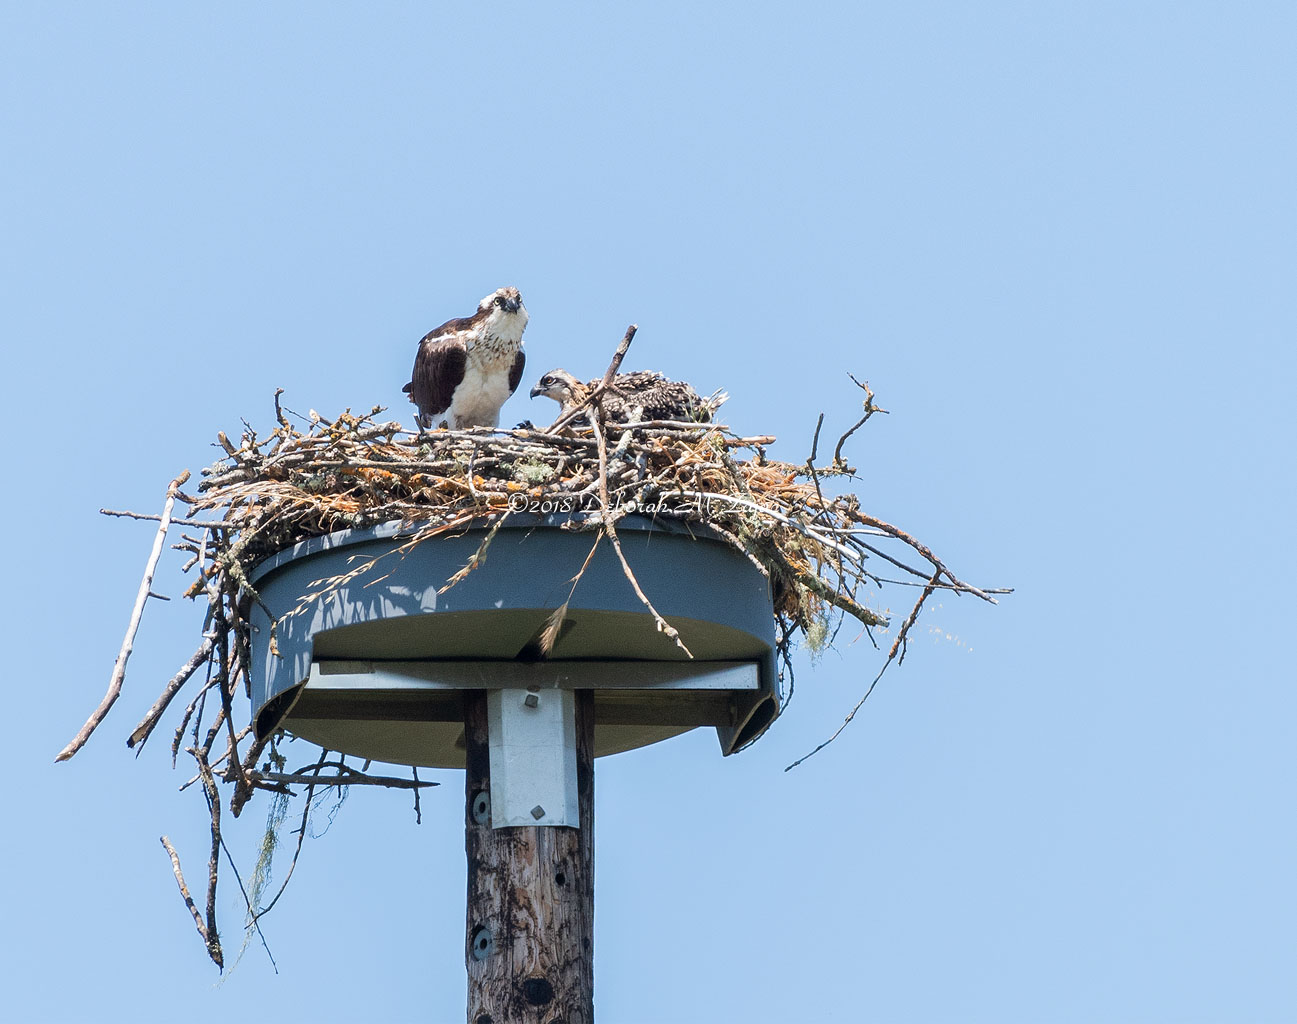 Osprey with Chicks in the Nest